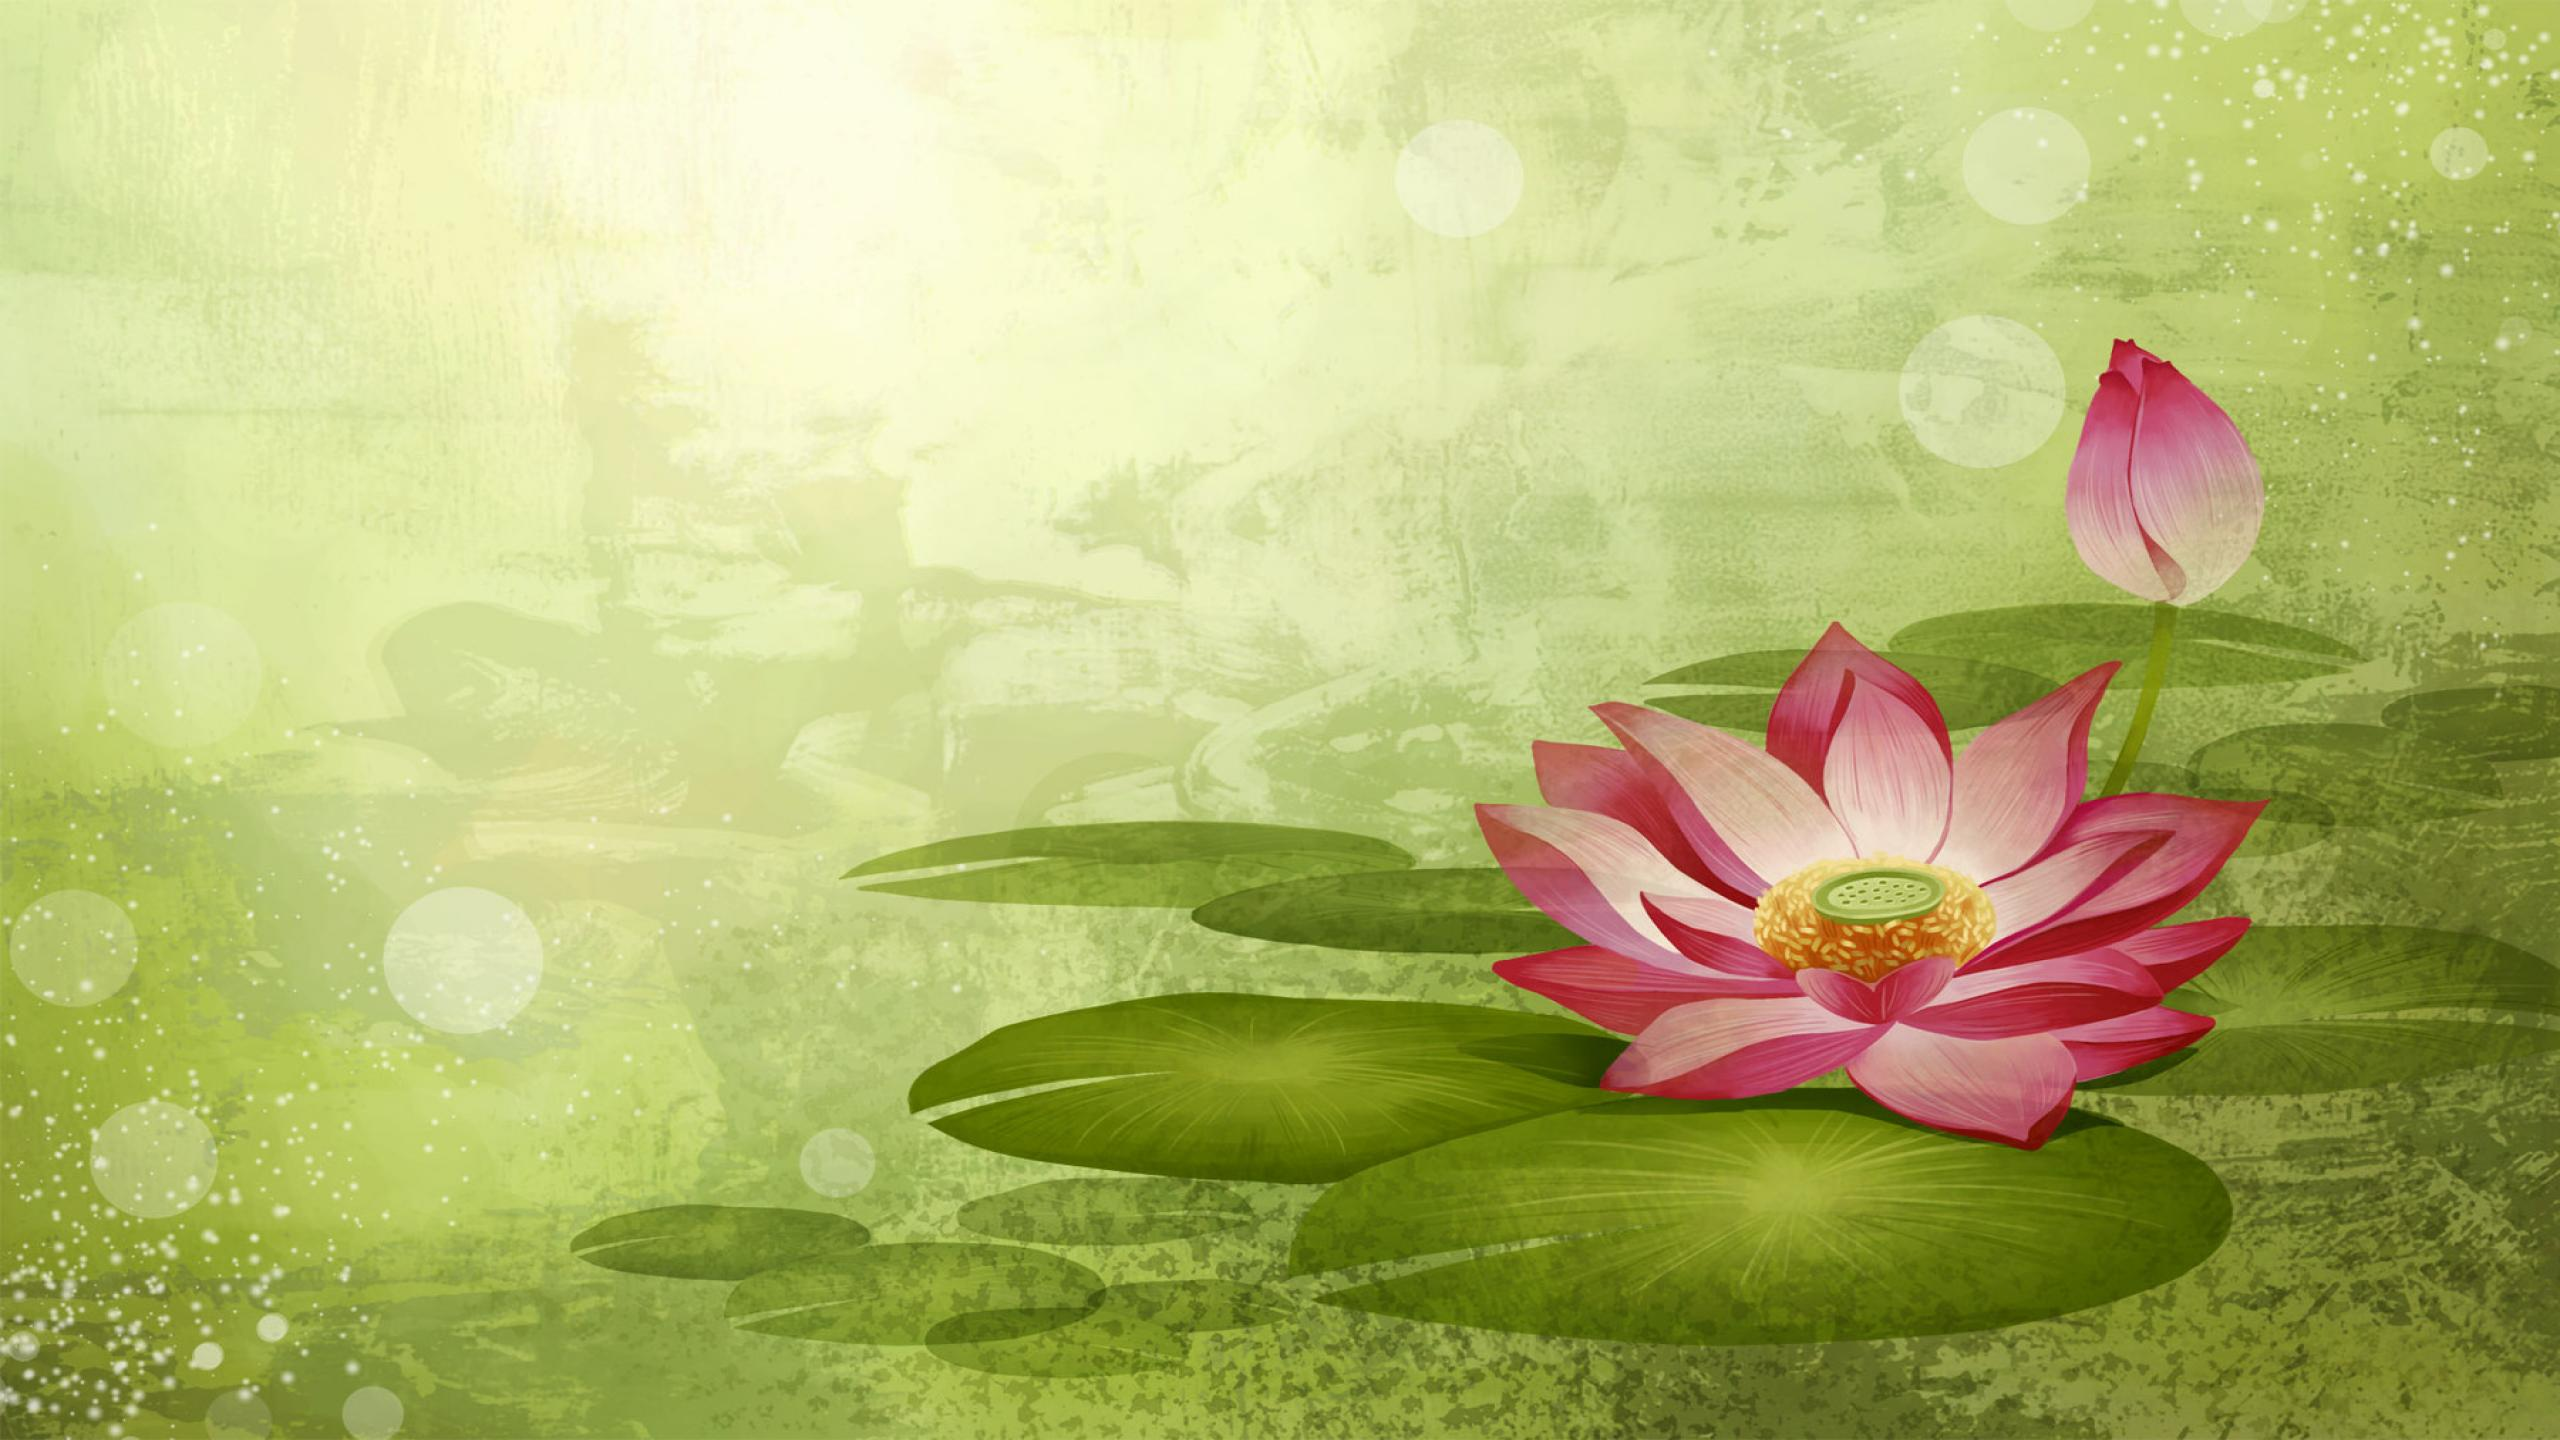 Lotus Flower Wallpapers Pictures Images